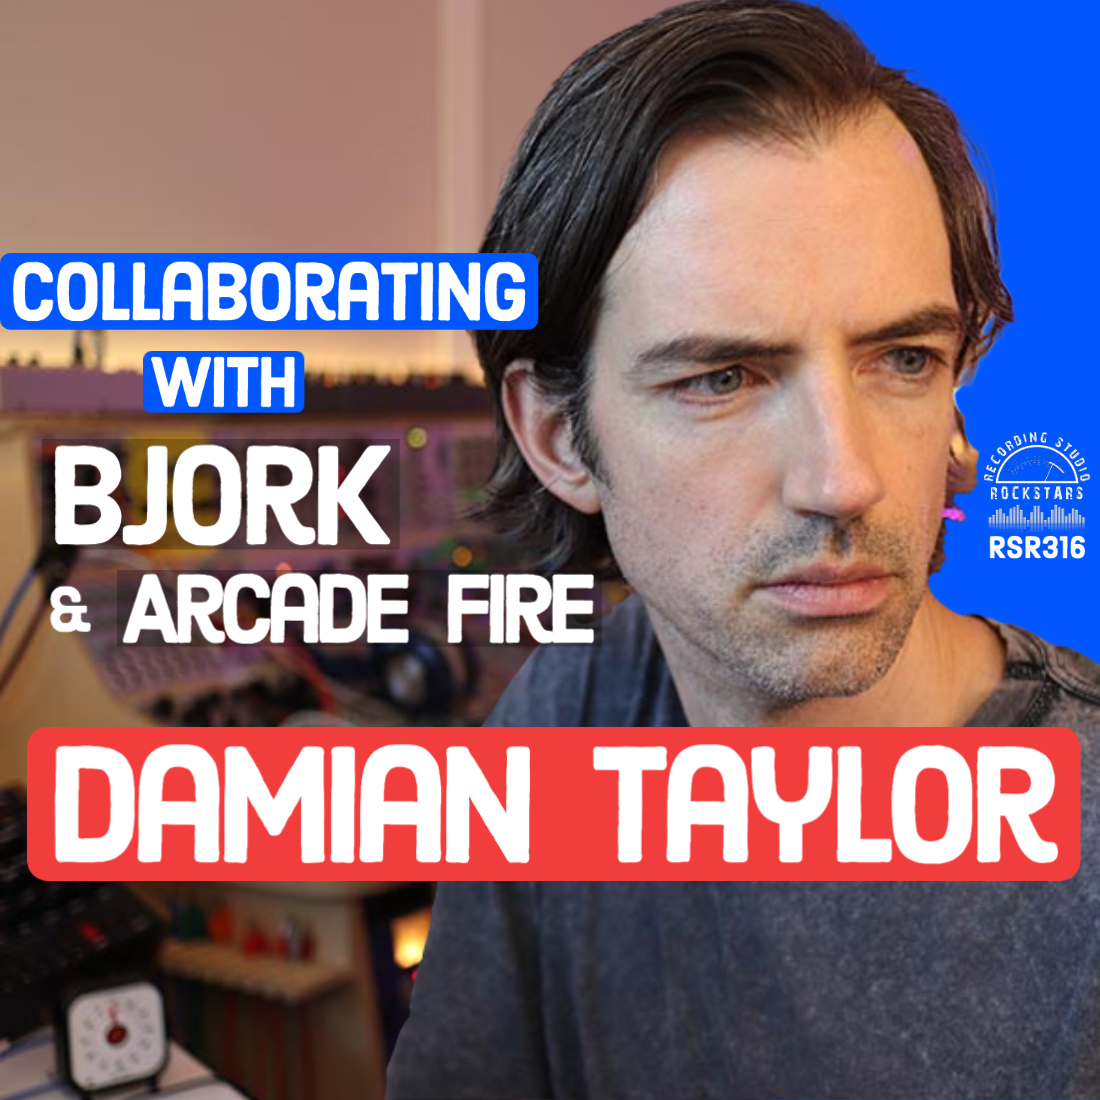 RSR316 - Damian Taylor -  Collaborating with Bjork and Arcade Fire